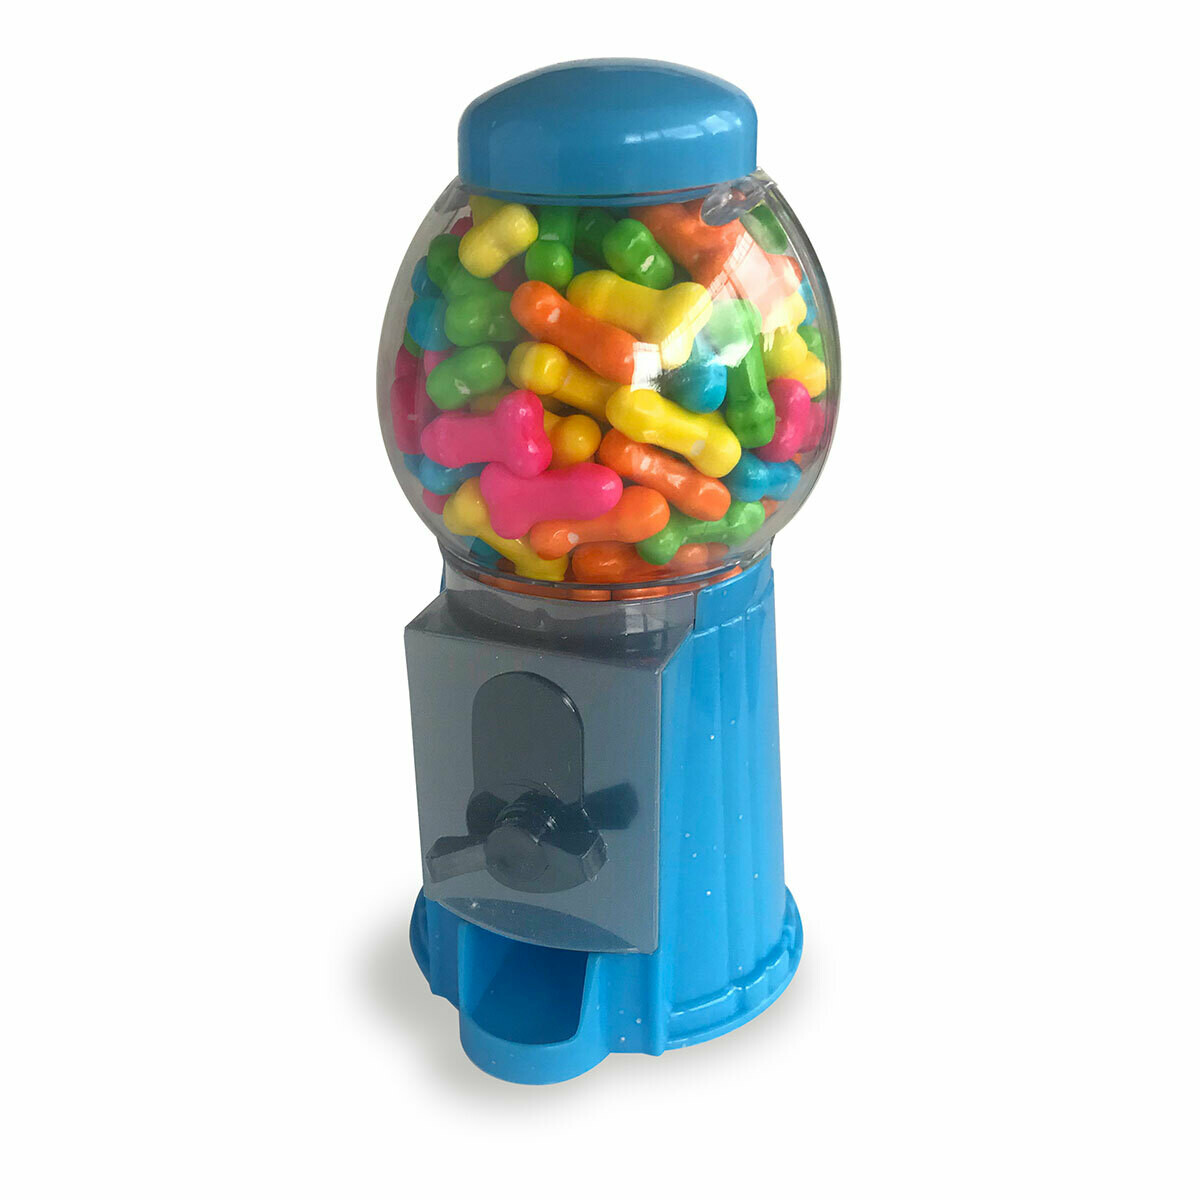 Super Fun Candy Machine